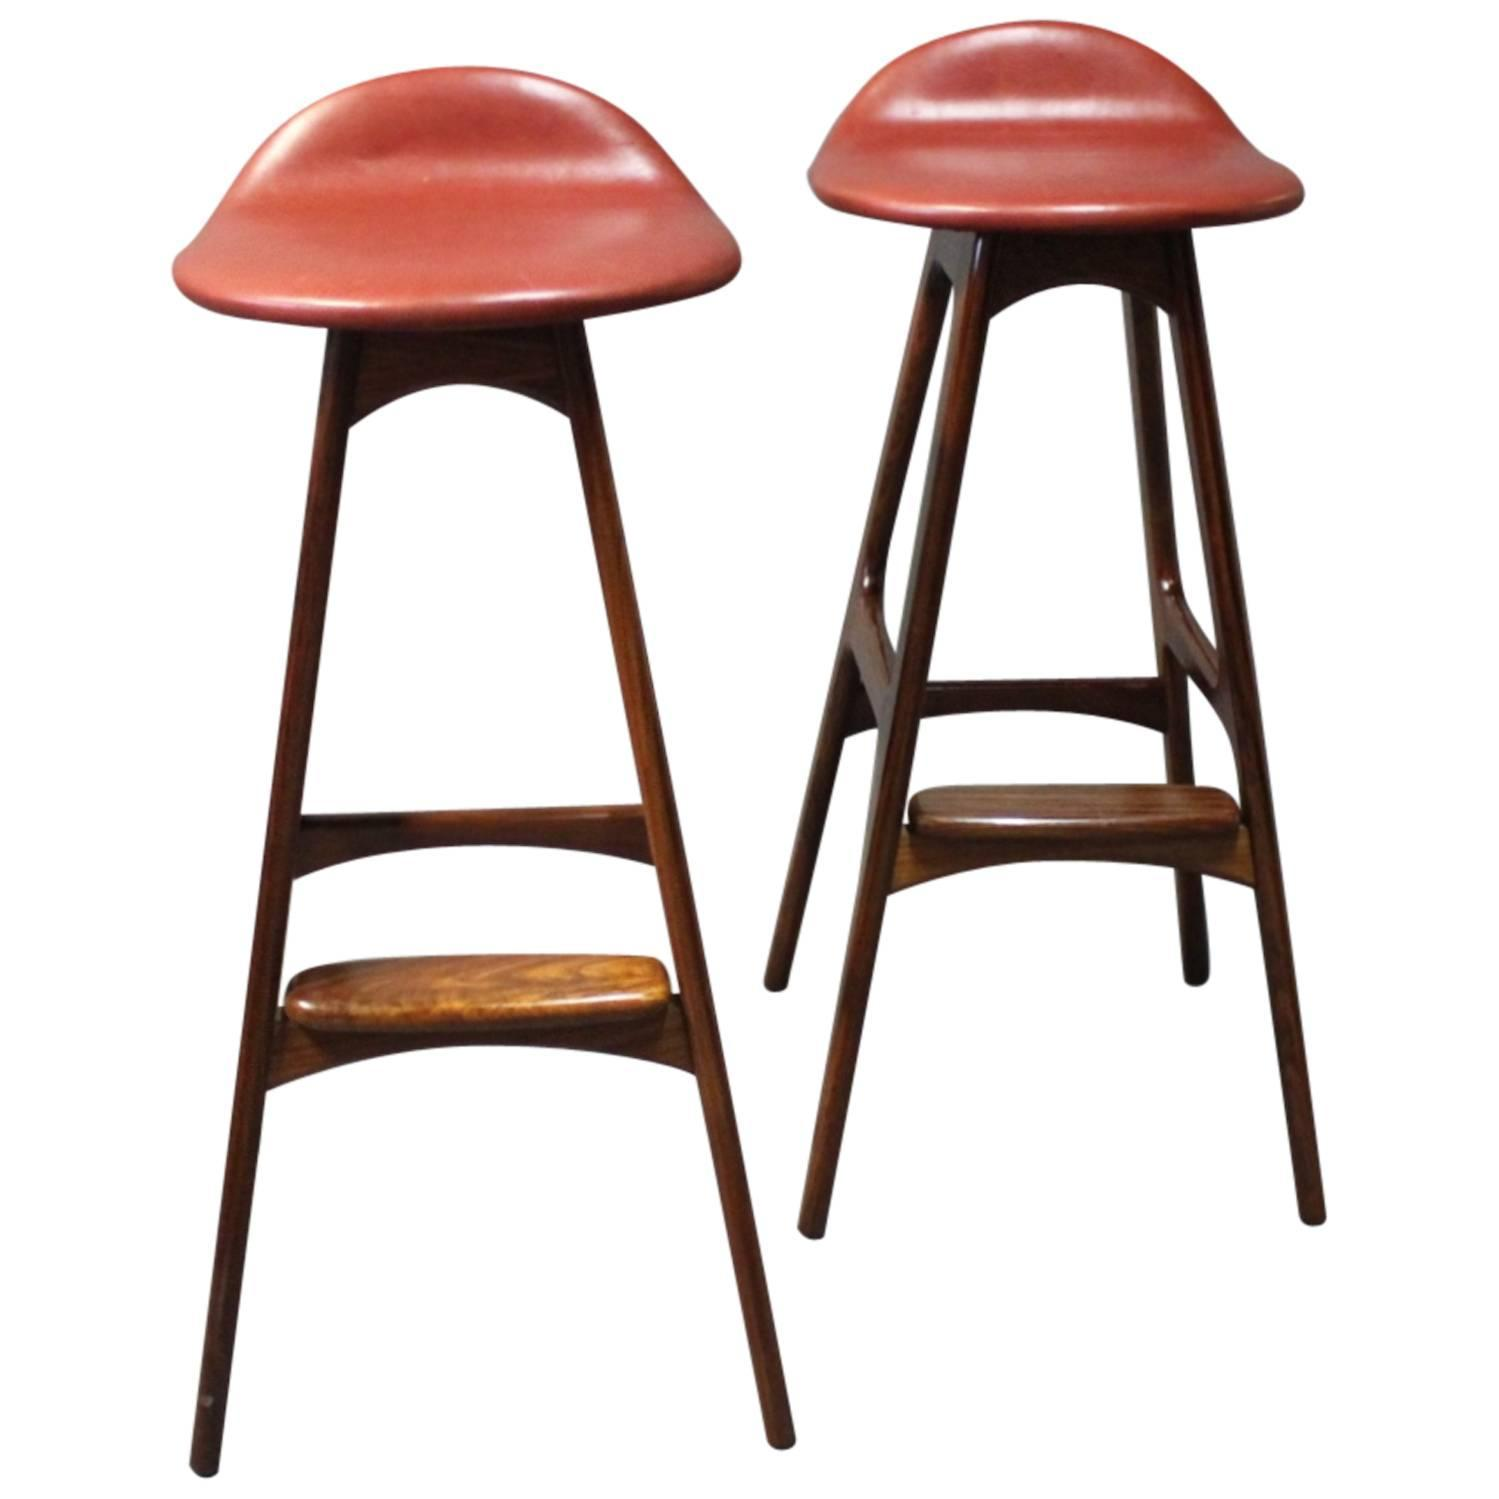 Bar stools model od61 by erik buch and odense furniture facto at 1stdibs - Erik buch bar stool ...